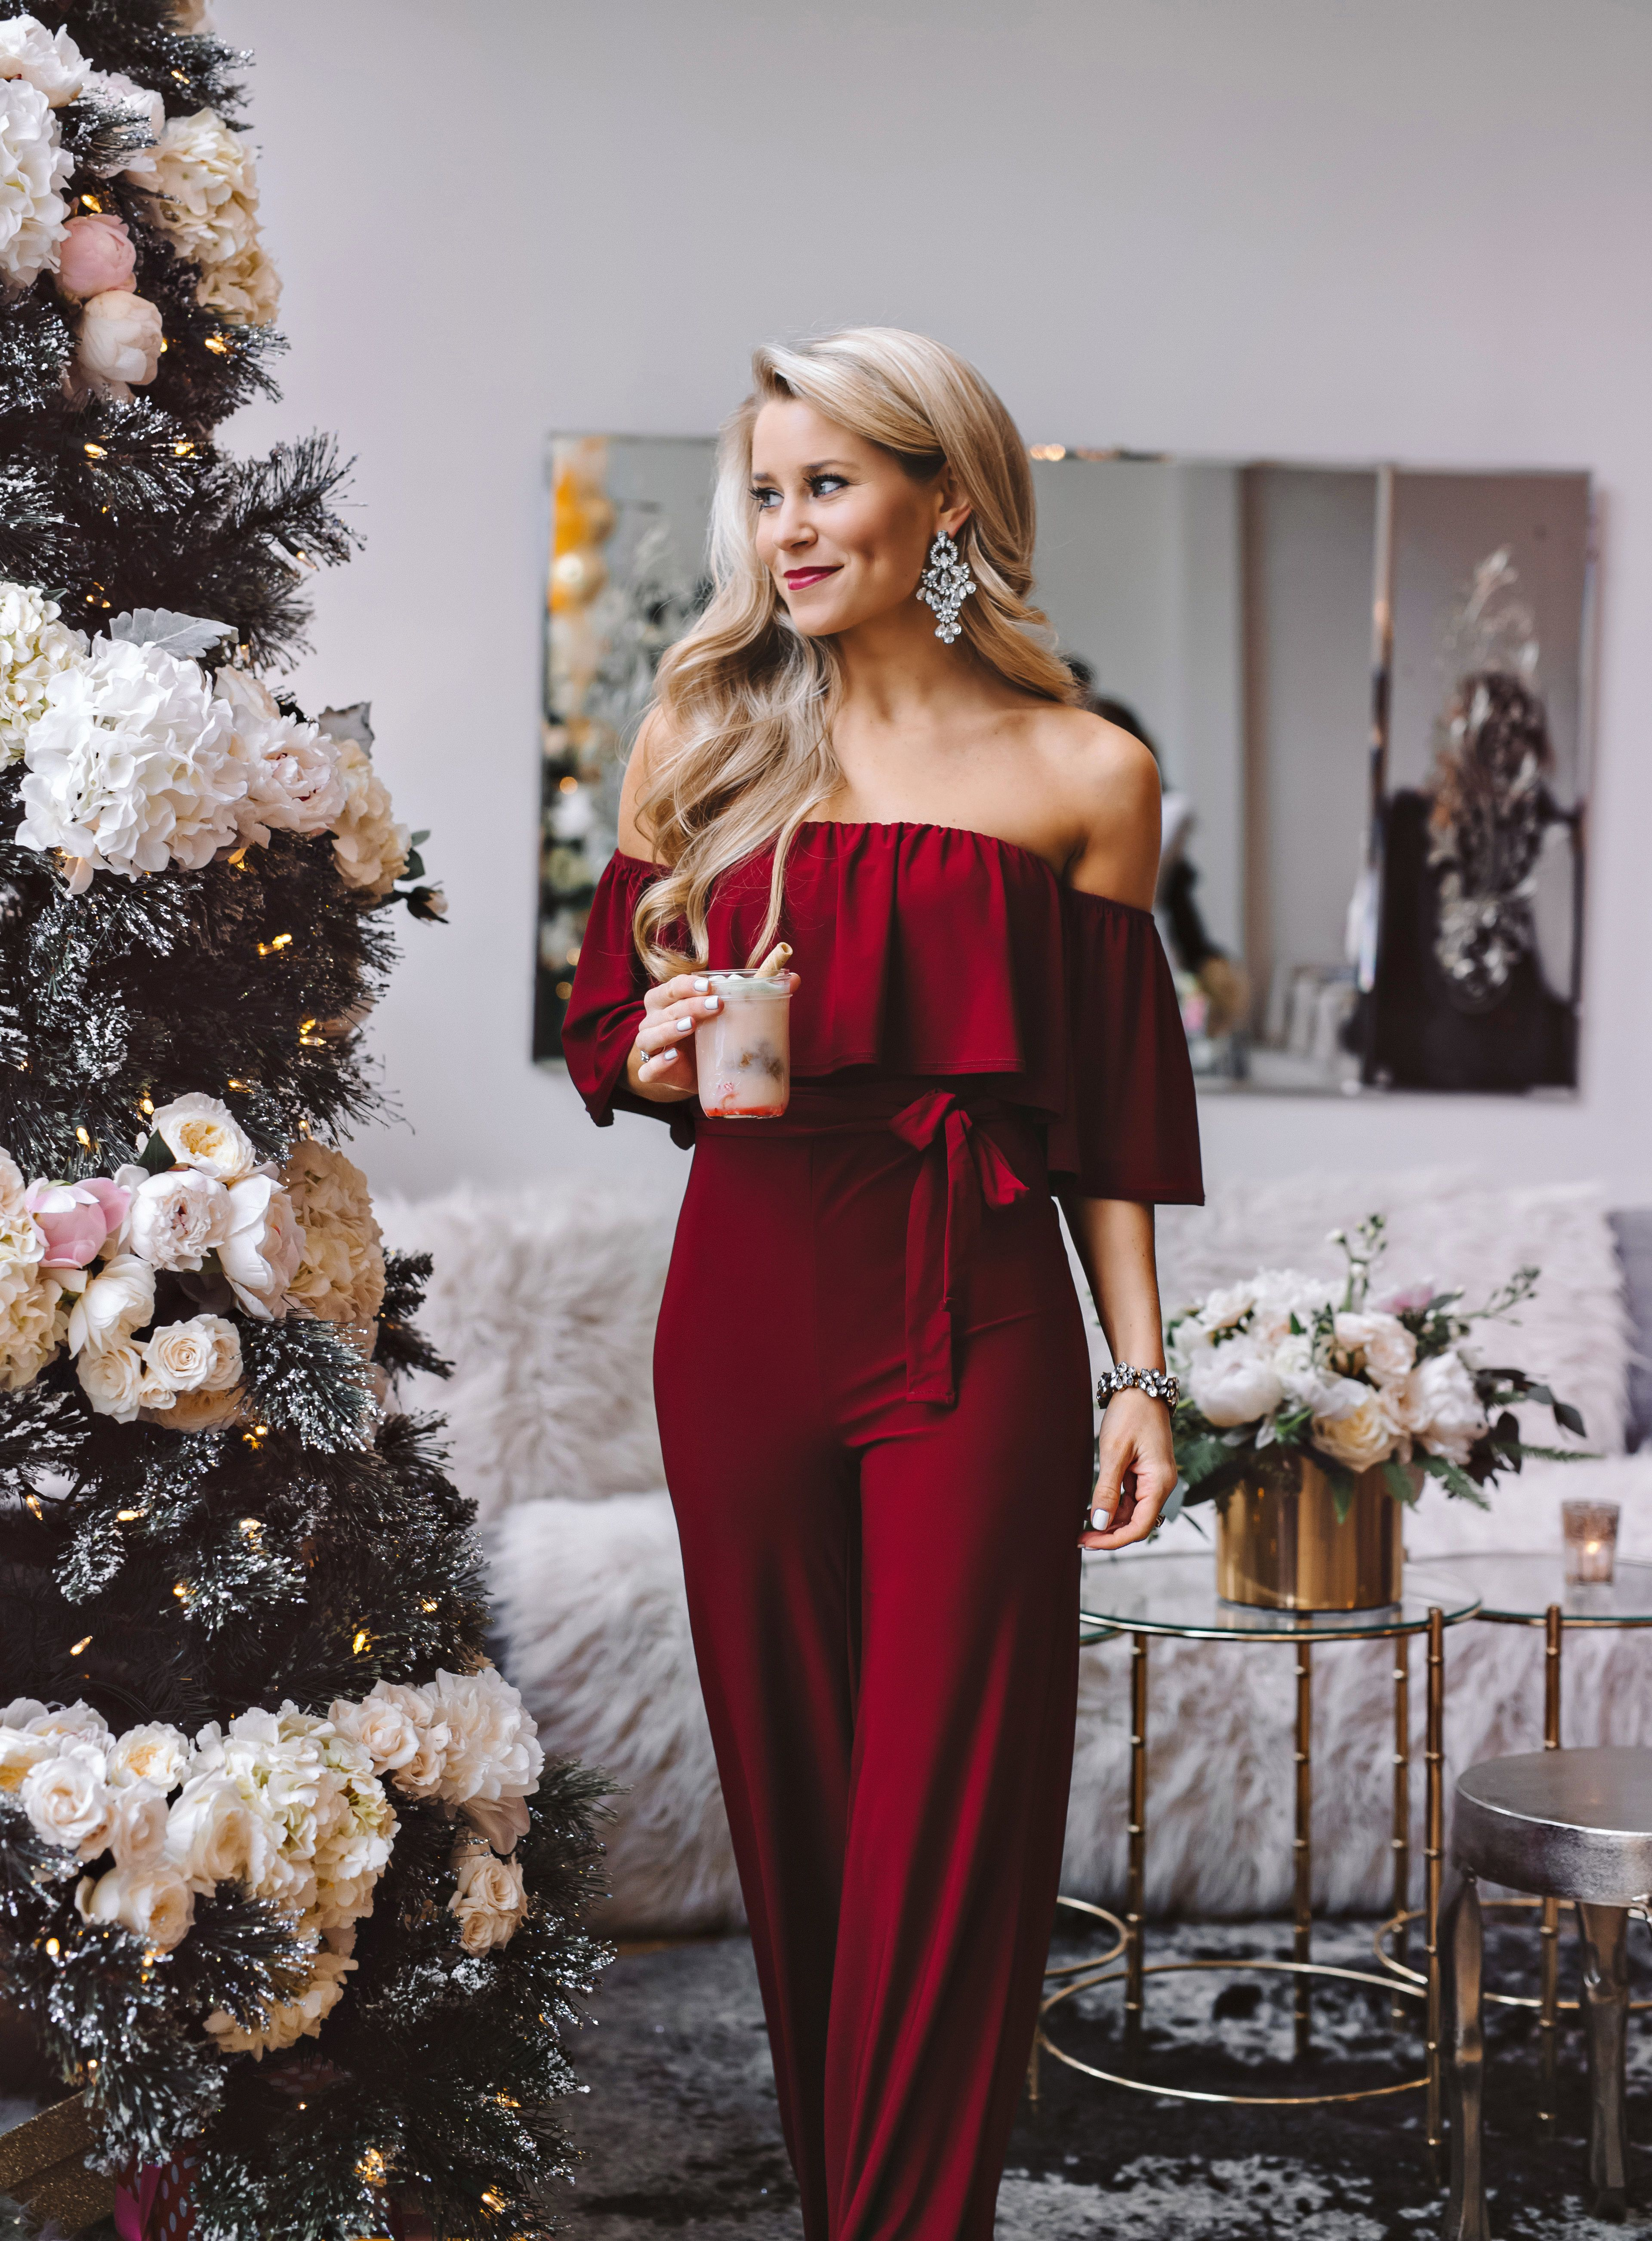 holiday party decor outfit ideas oliviarinkcom